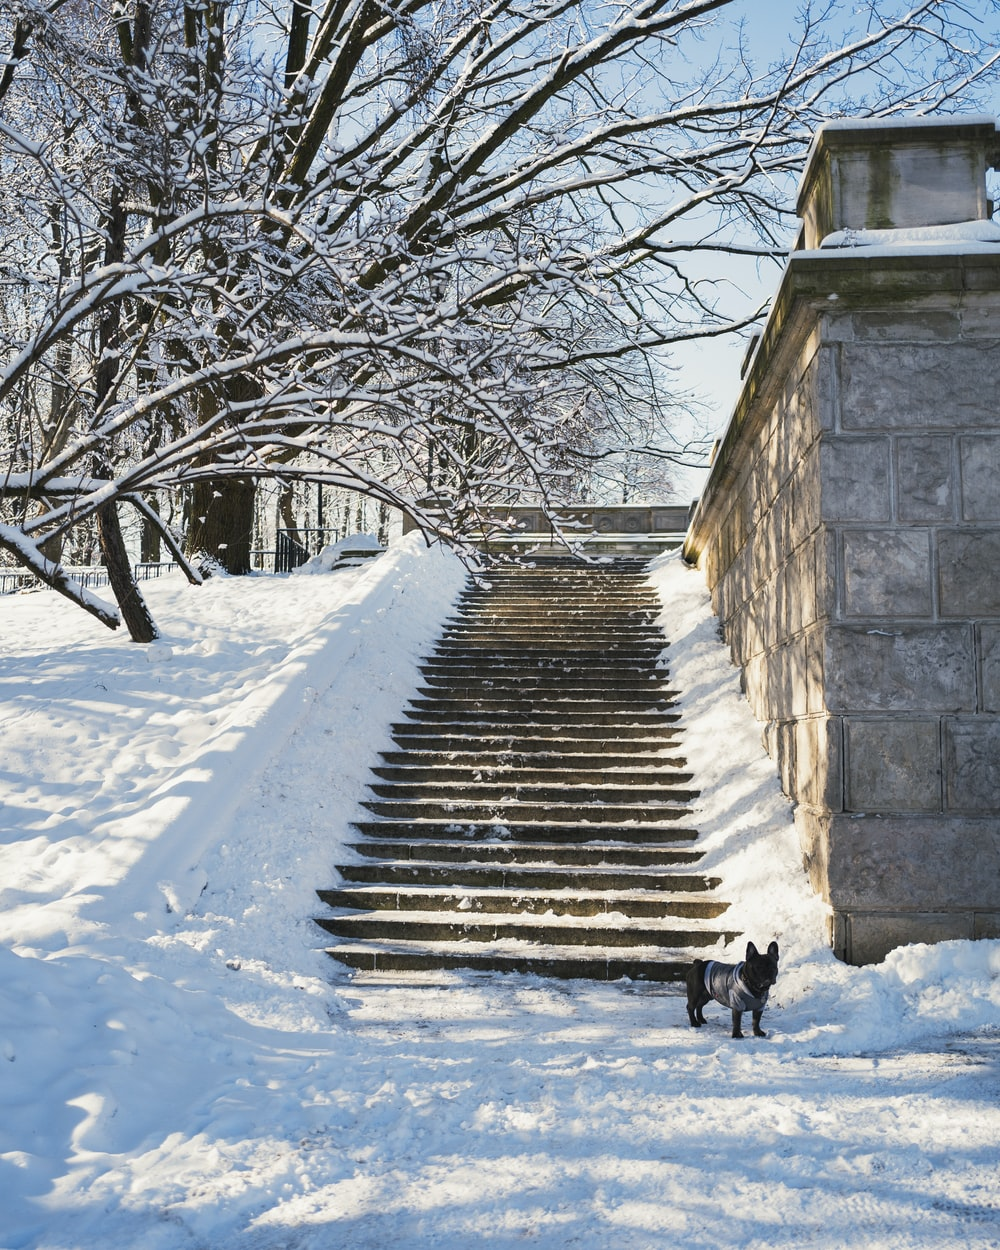 black dog on snow covered stairs